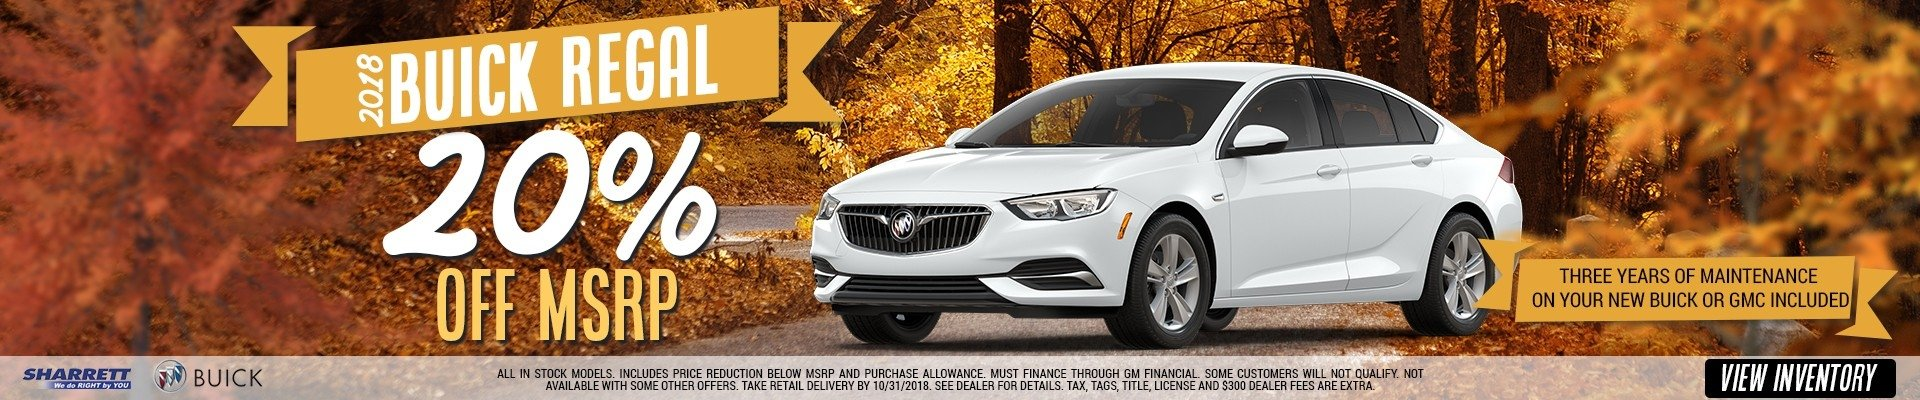 Get 20% off MSRP on the new 2018 Buick Regal